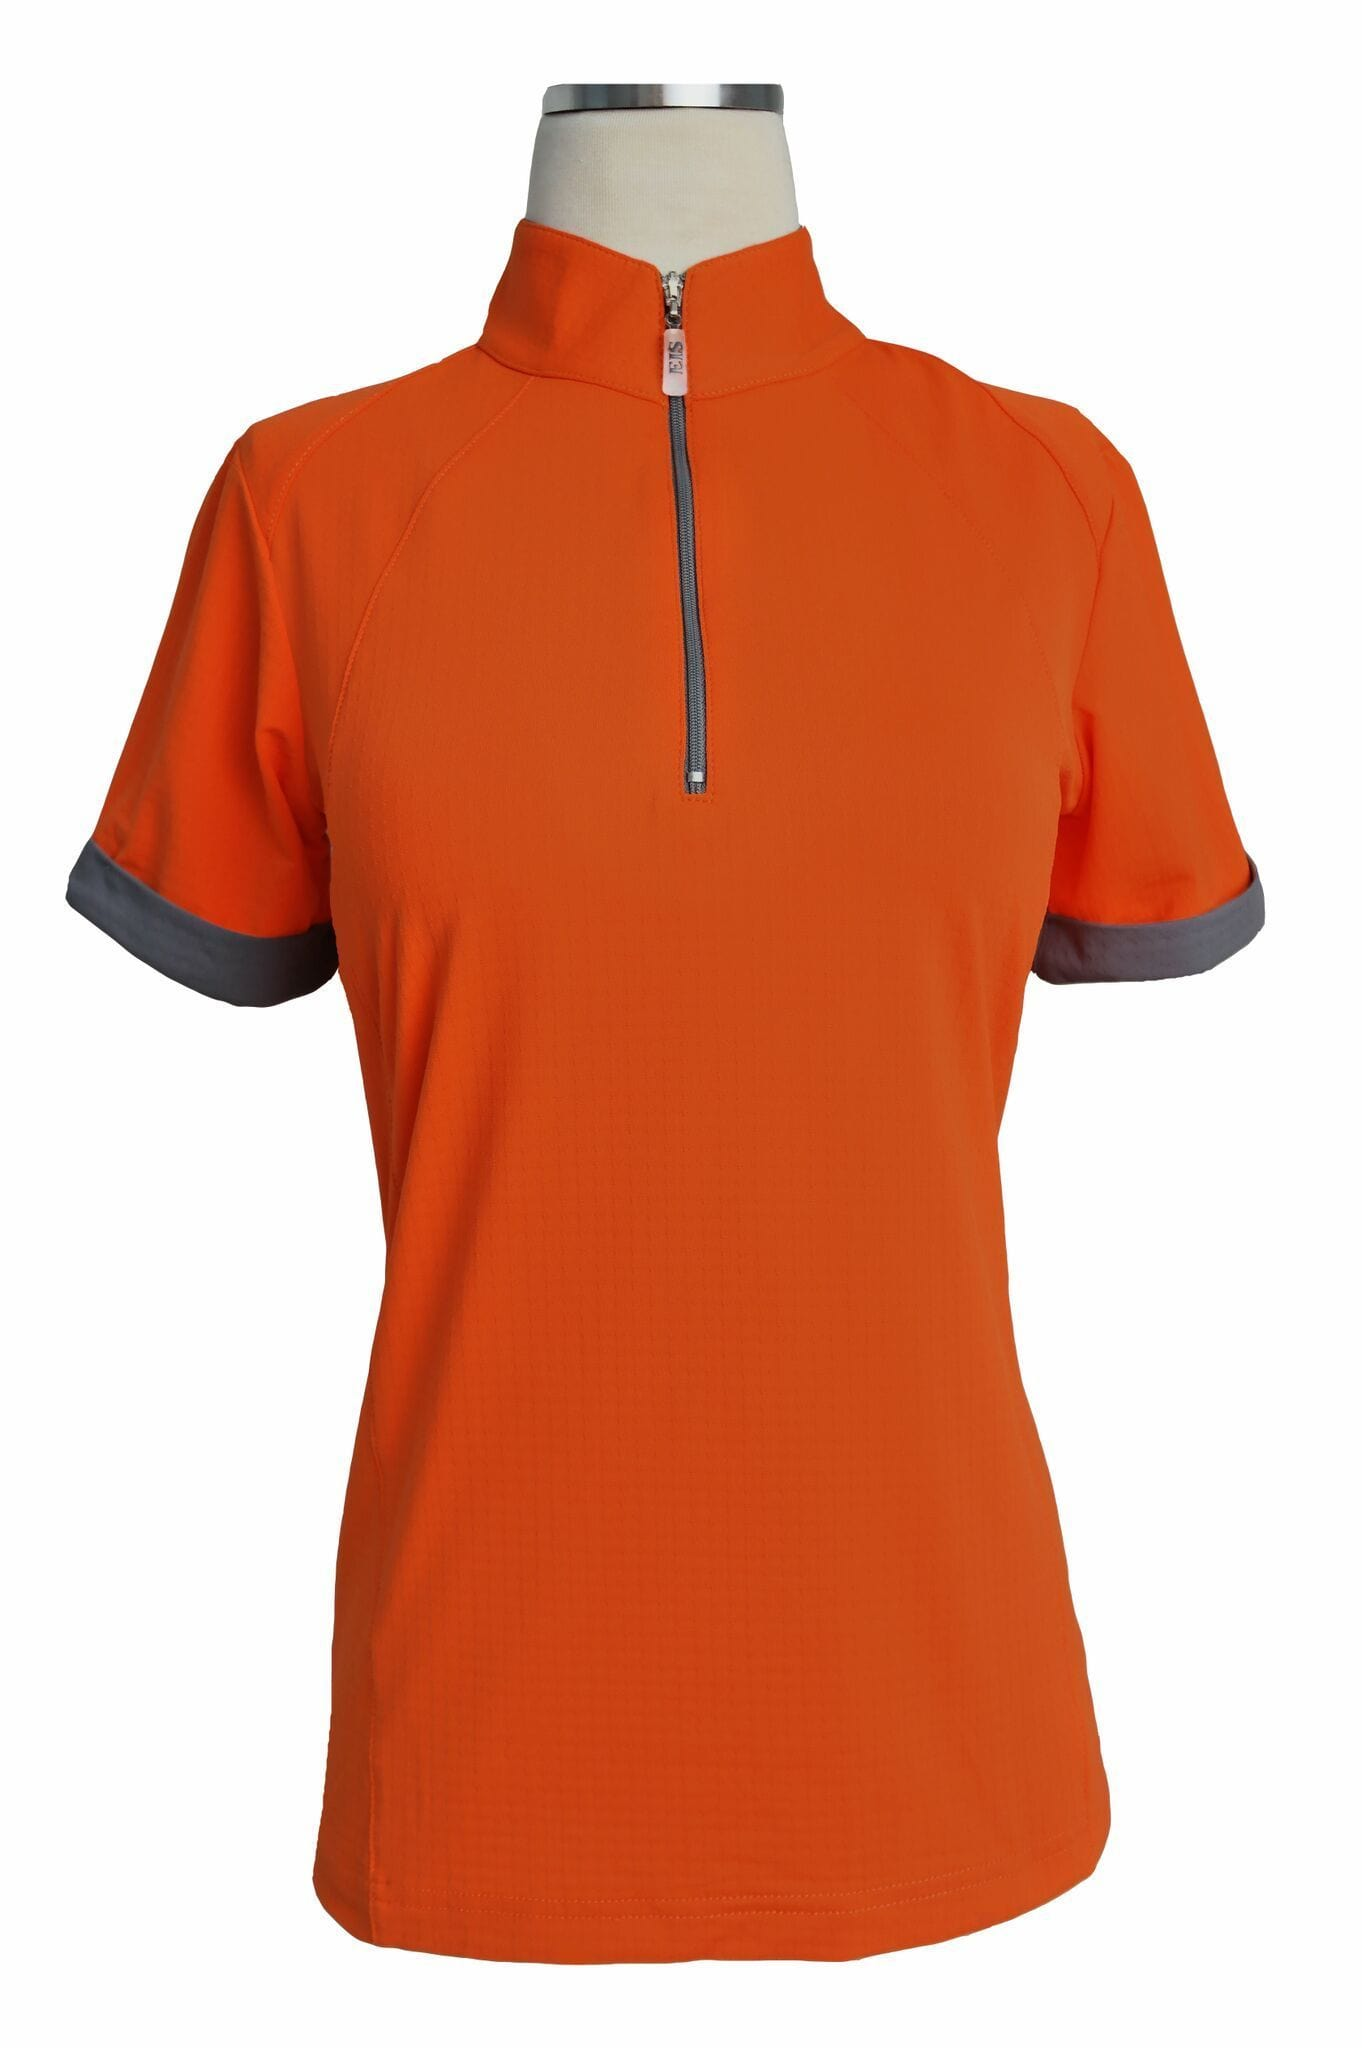 EIS Shirt EIS Orange Paneled Short Sleeve Sunshirts equestrian team apparel online tack store mobile tack store custom farm apparel custom show stable clothing equestrian lifestyle horse show clothing riding clothes horses equestrian tack store